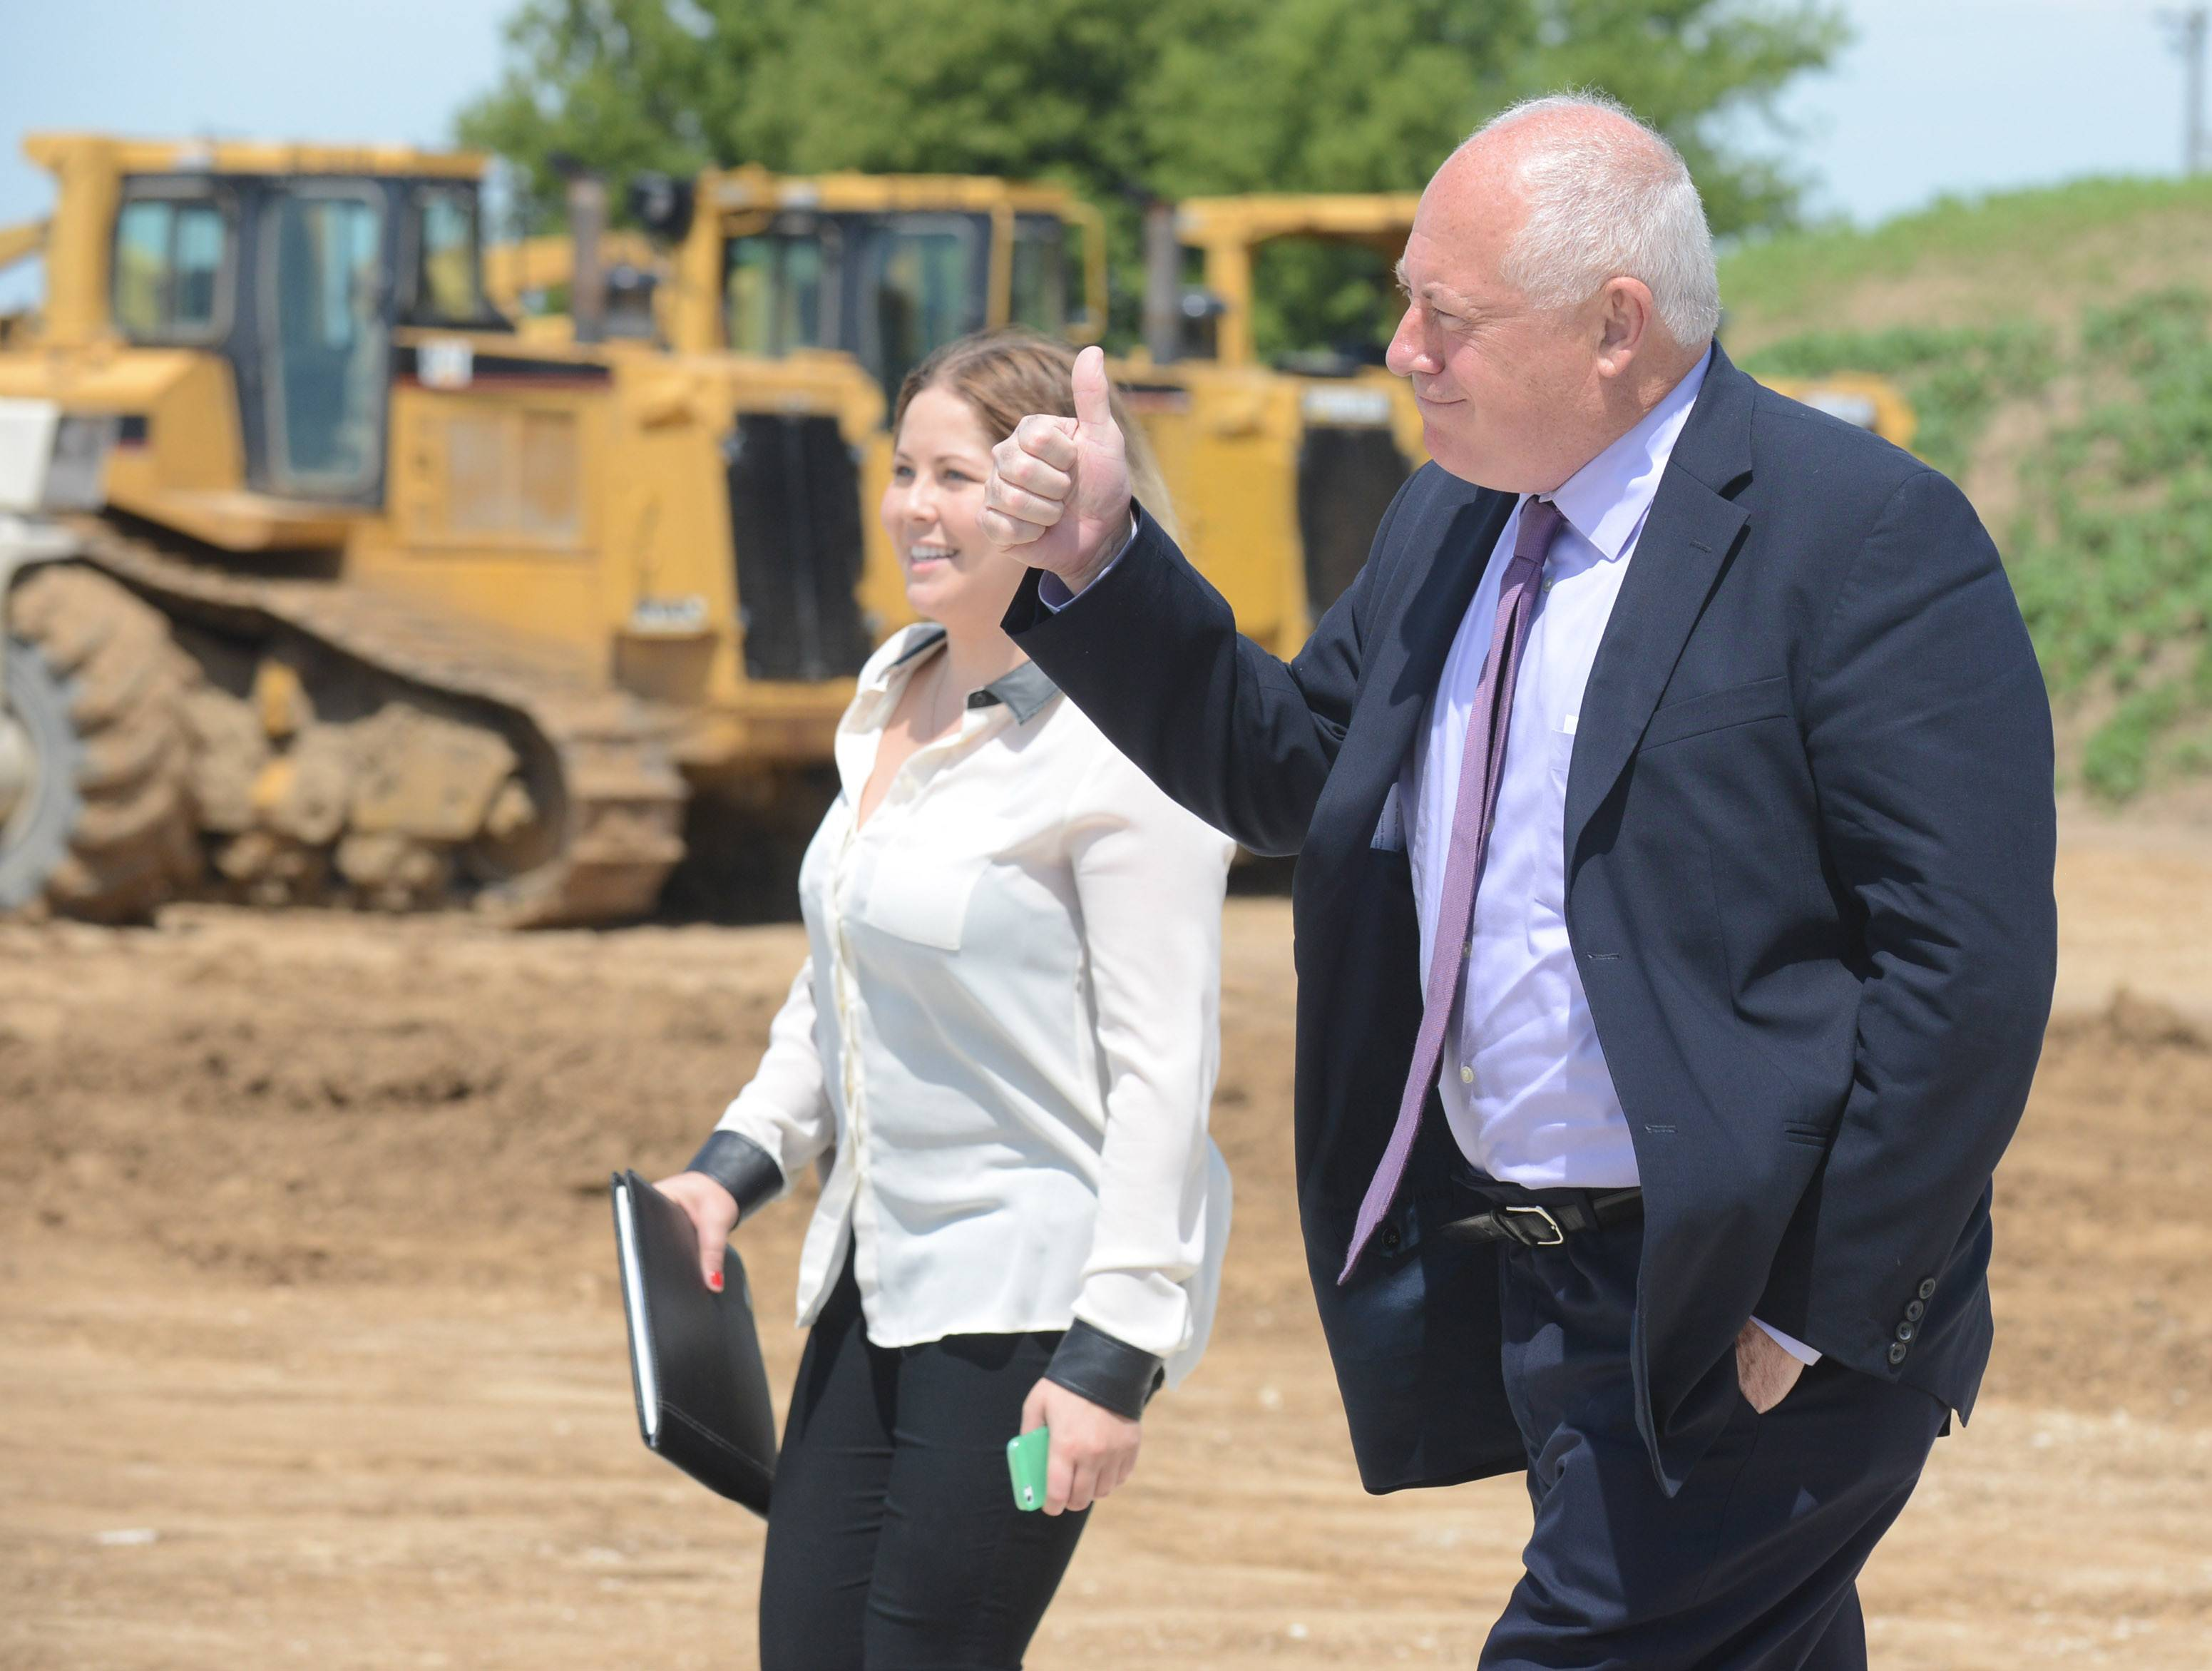 Gov. Pat Quinn gives a thumbs-up to attendees as he arrives for the Weber-Stephen Products groundbreaking ceremony in Huntley on Friday.